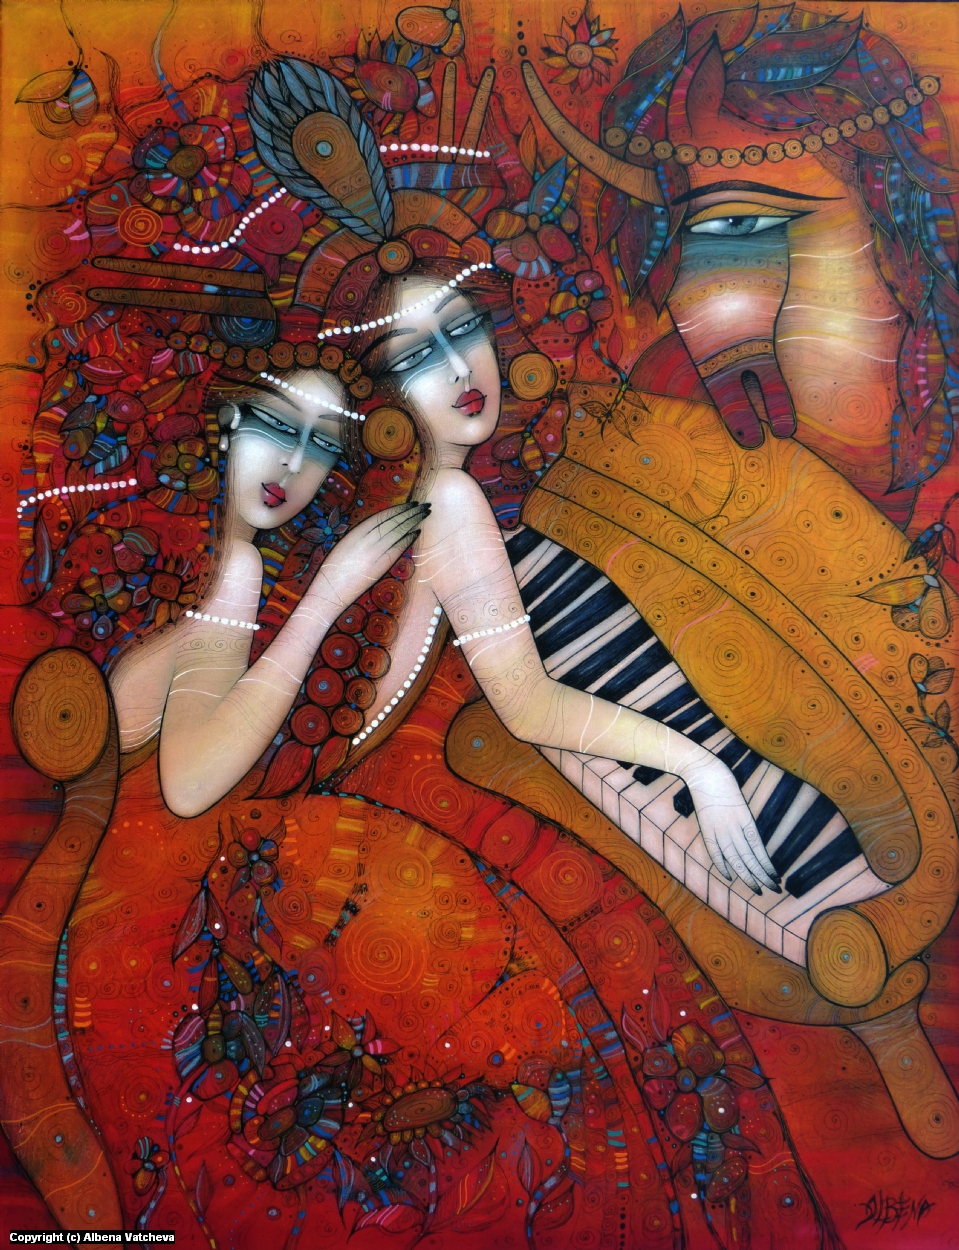 AT THE OPERA Artwork by Albena Vatcheva